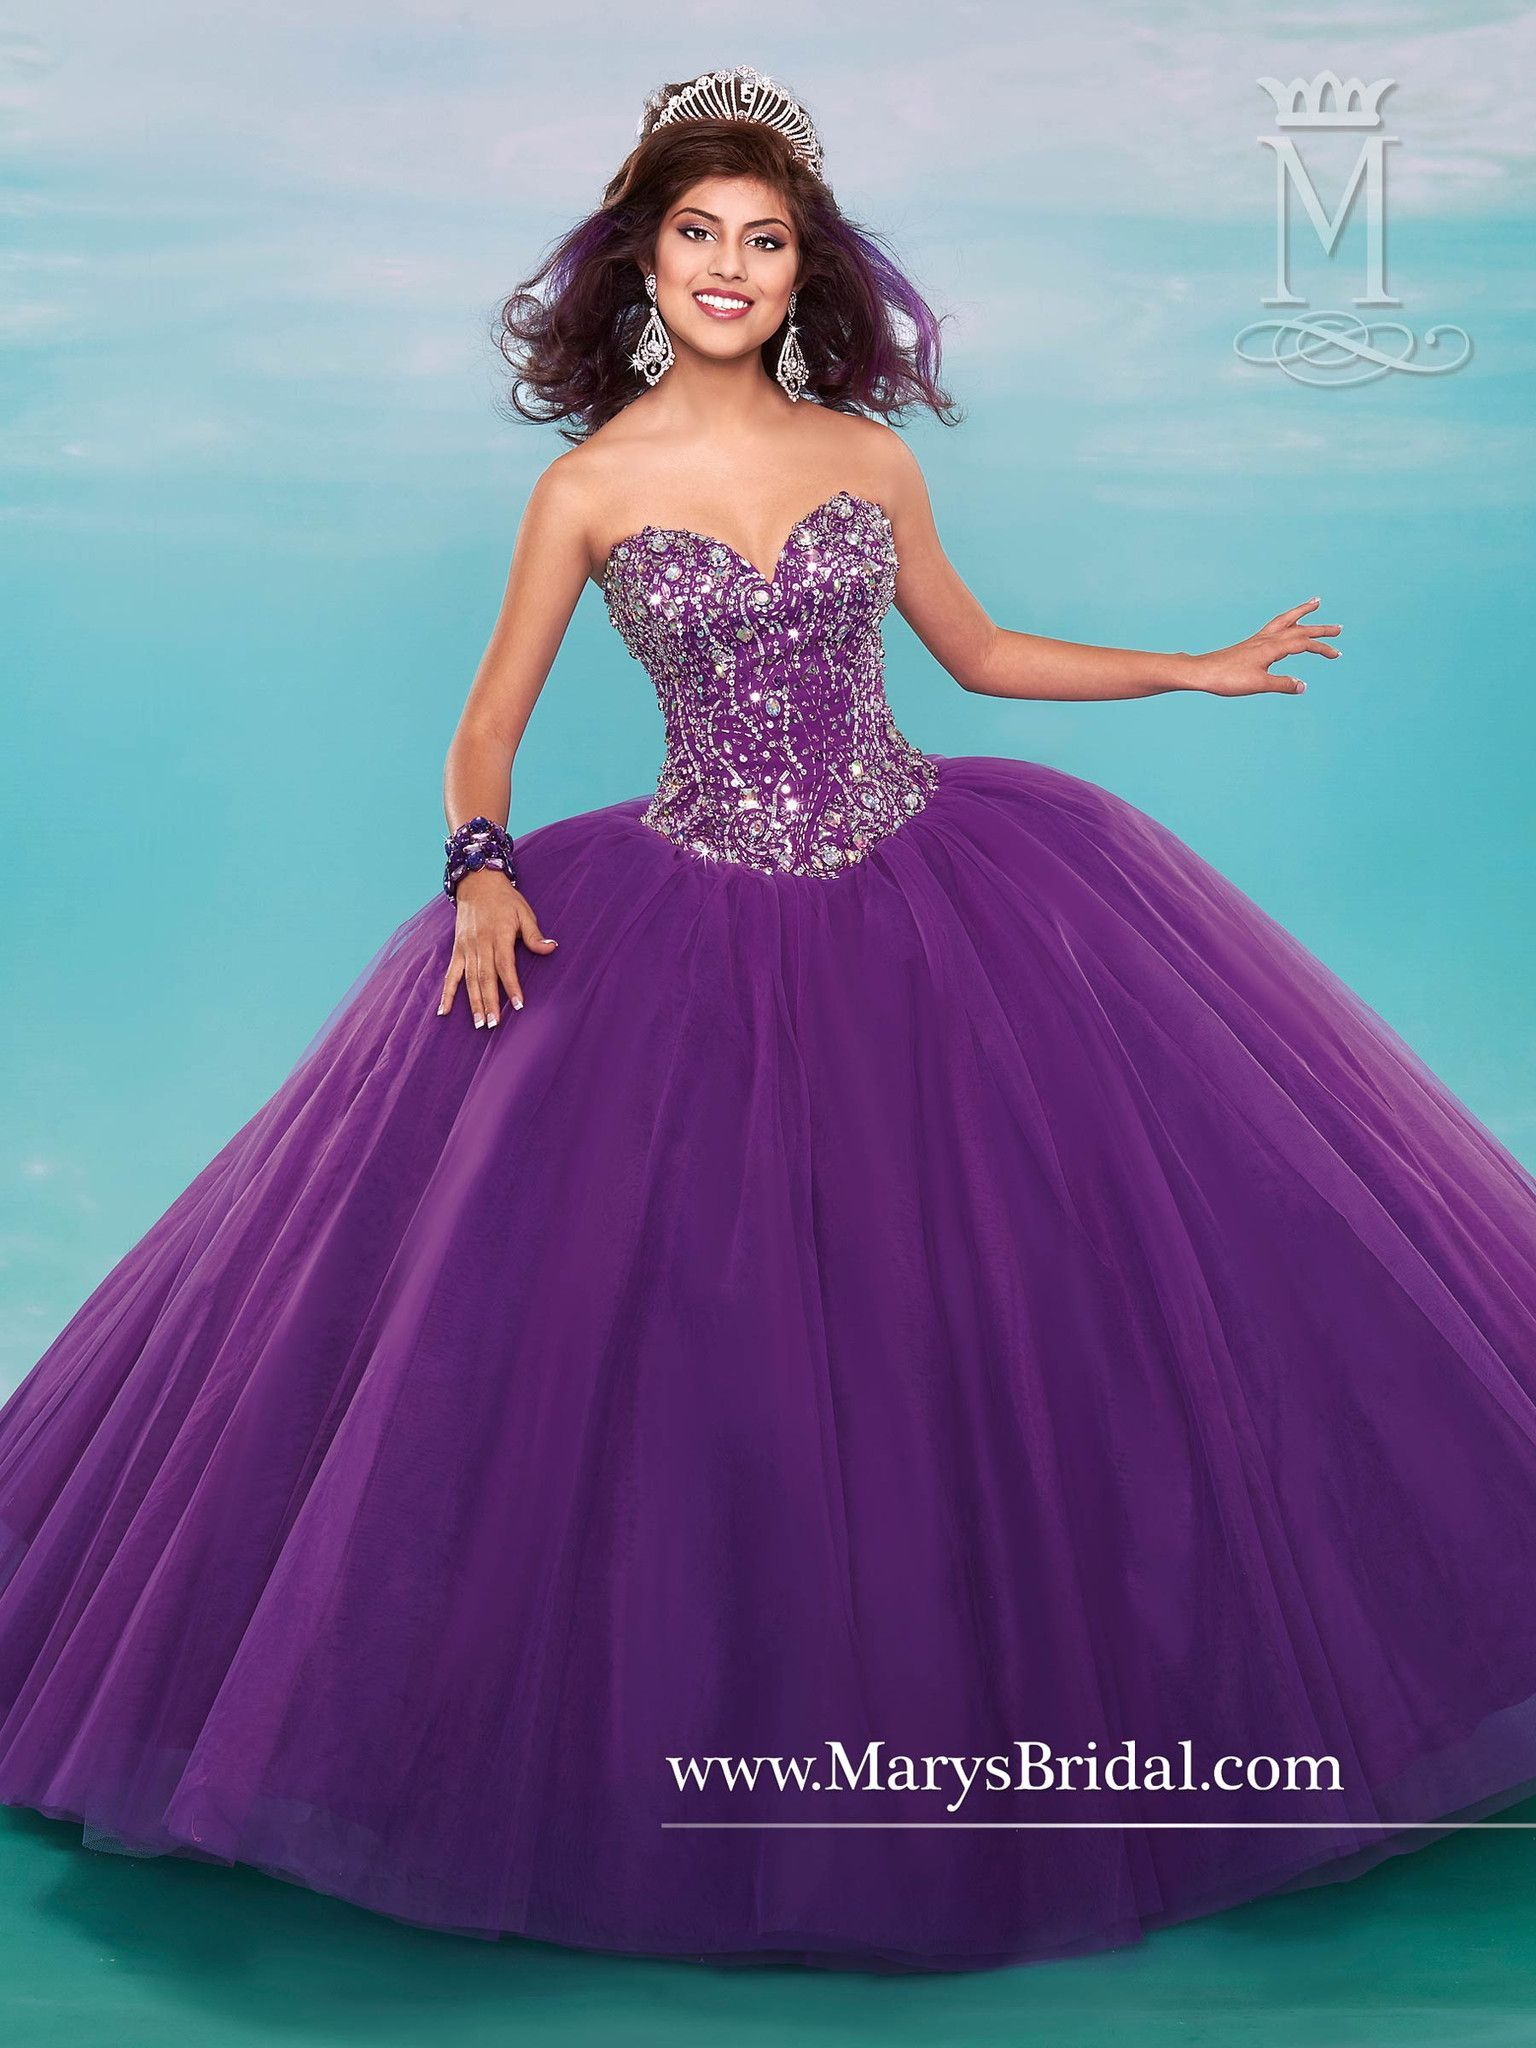 353f07d6138 Dance the night away in a Mary s Bridal Beloving Collection Quinceanera  Dress Style 4613 at your Sweet 15 party or at any formal event.